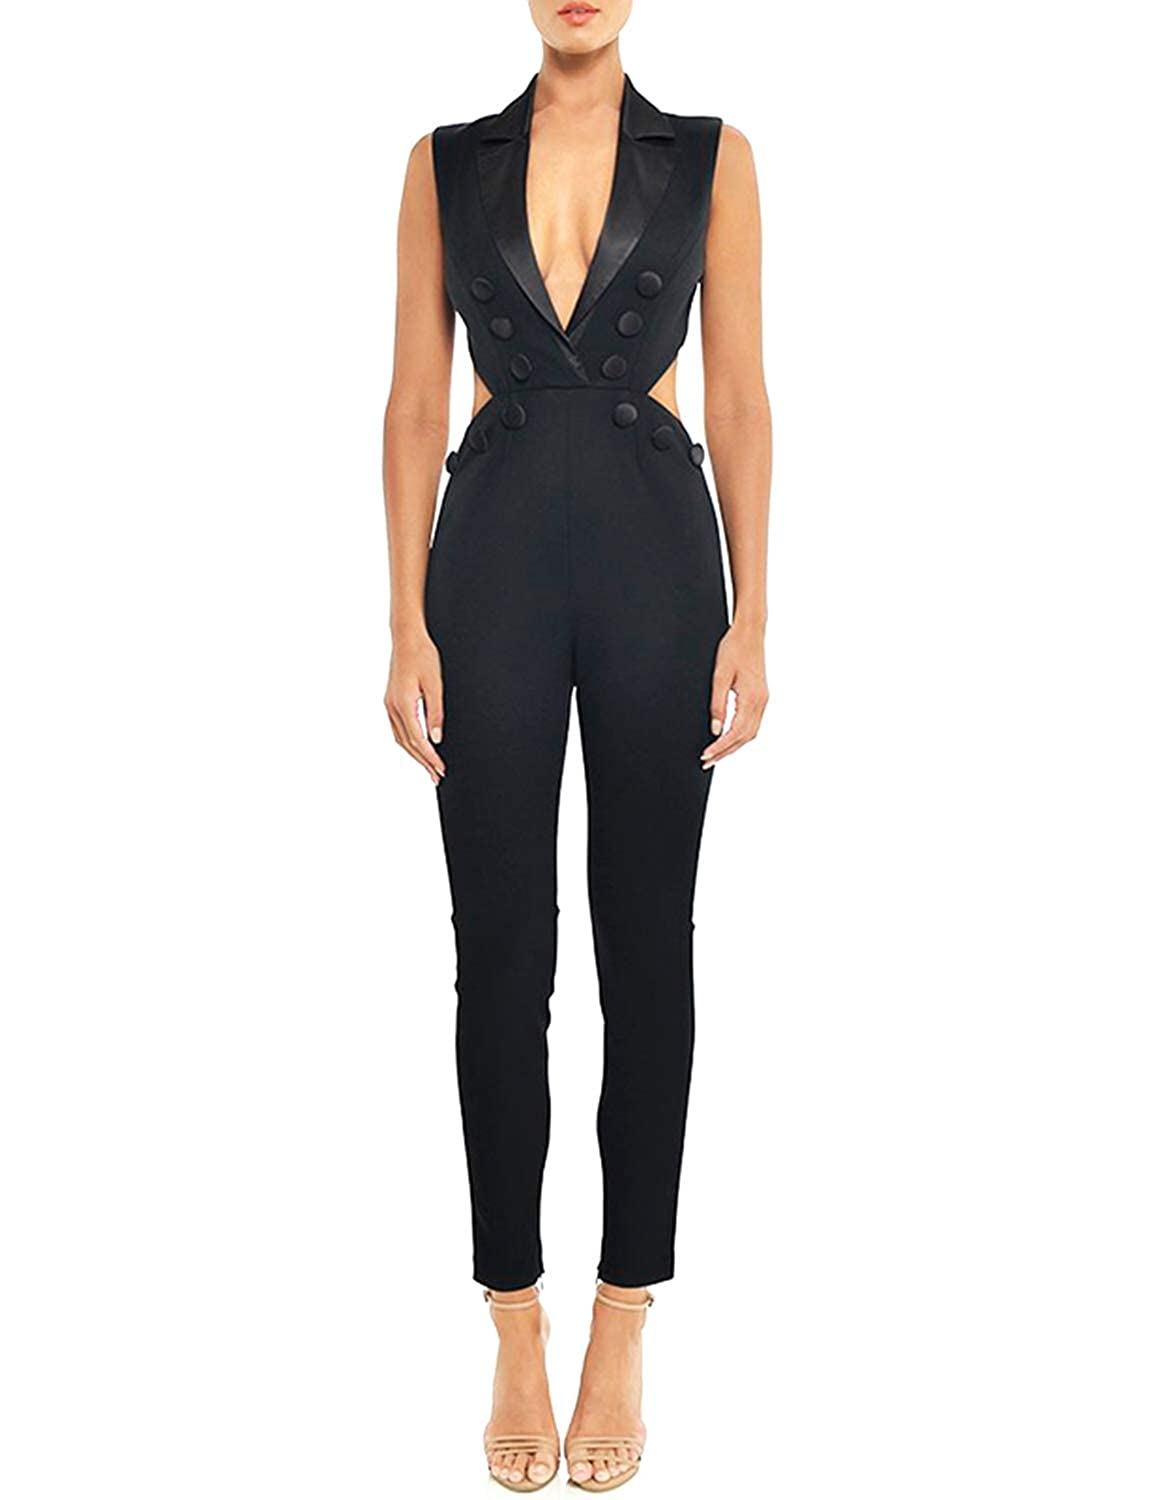 Black Sunlen Black VNeck Women Backless Sleeveless Long Jumpsuit Clubnight Party Skinny Cut Out SL1BH5827